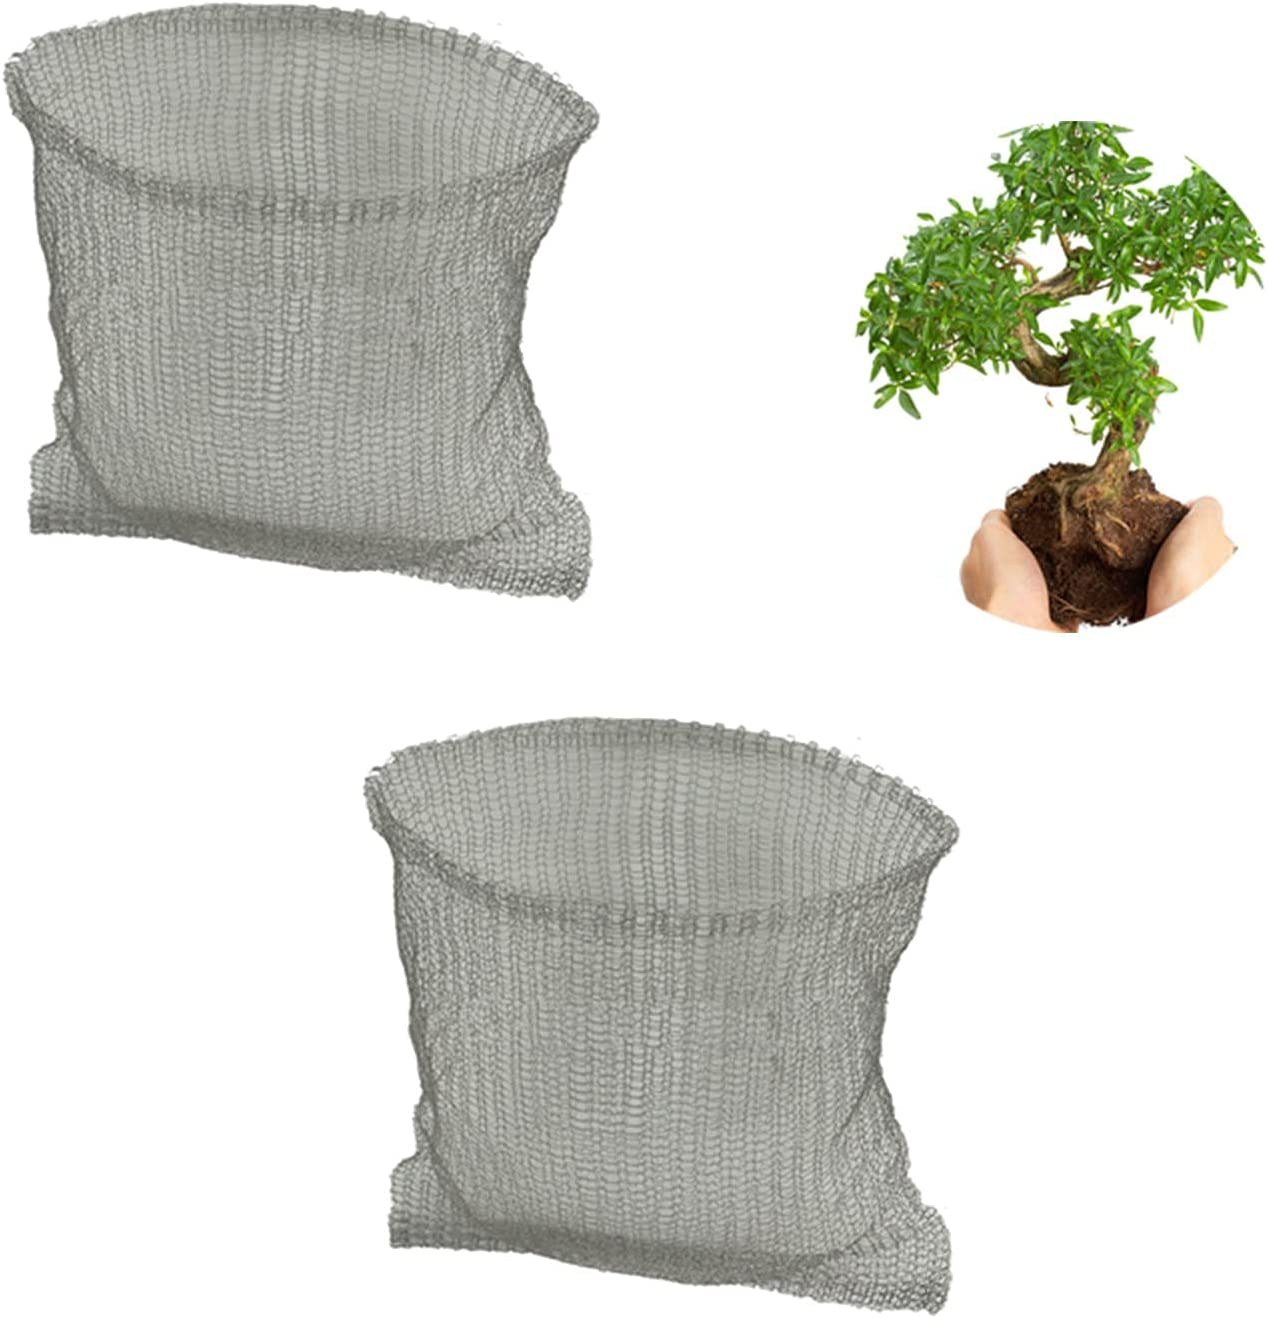 2 Pcs Root Guard Baskets, Protect Root Guard Wire Speed Baskets Heavy Duty Root Protector Plant Baskets, Effective Gopher Vole Repellent Baskets for Perennials Garden Protect Root Plant Vegetables